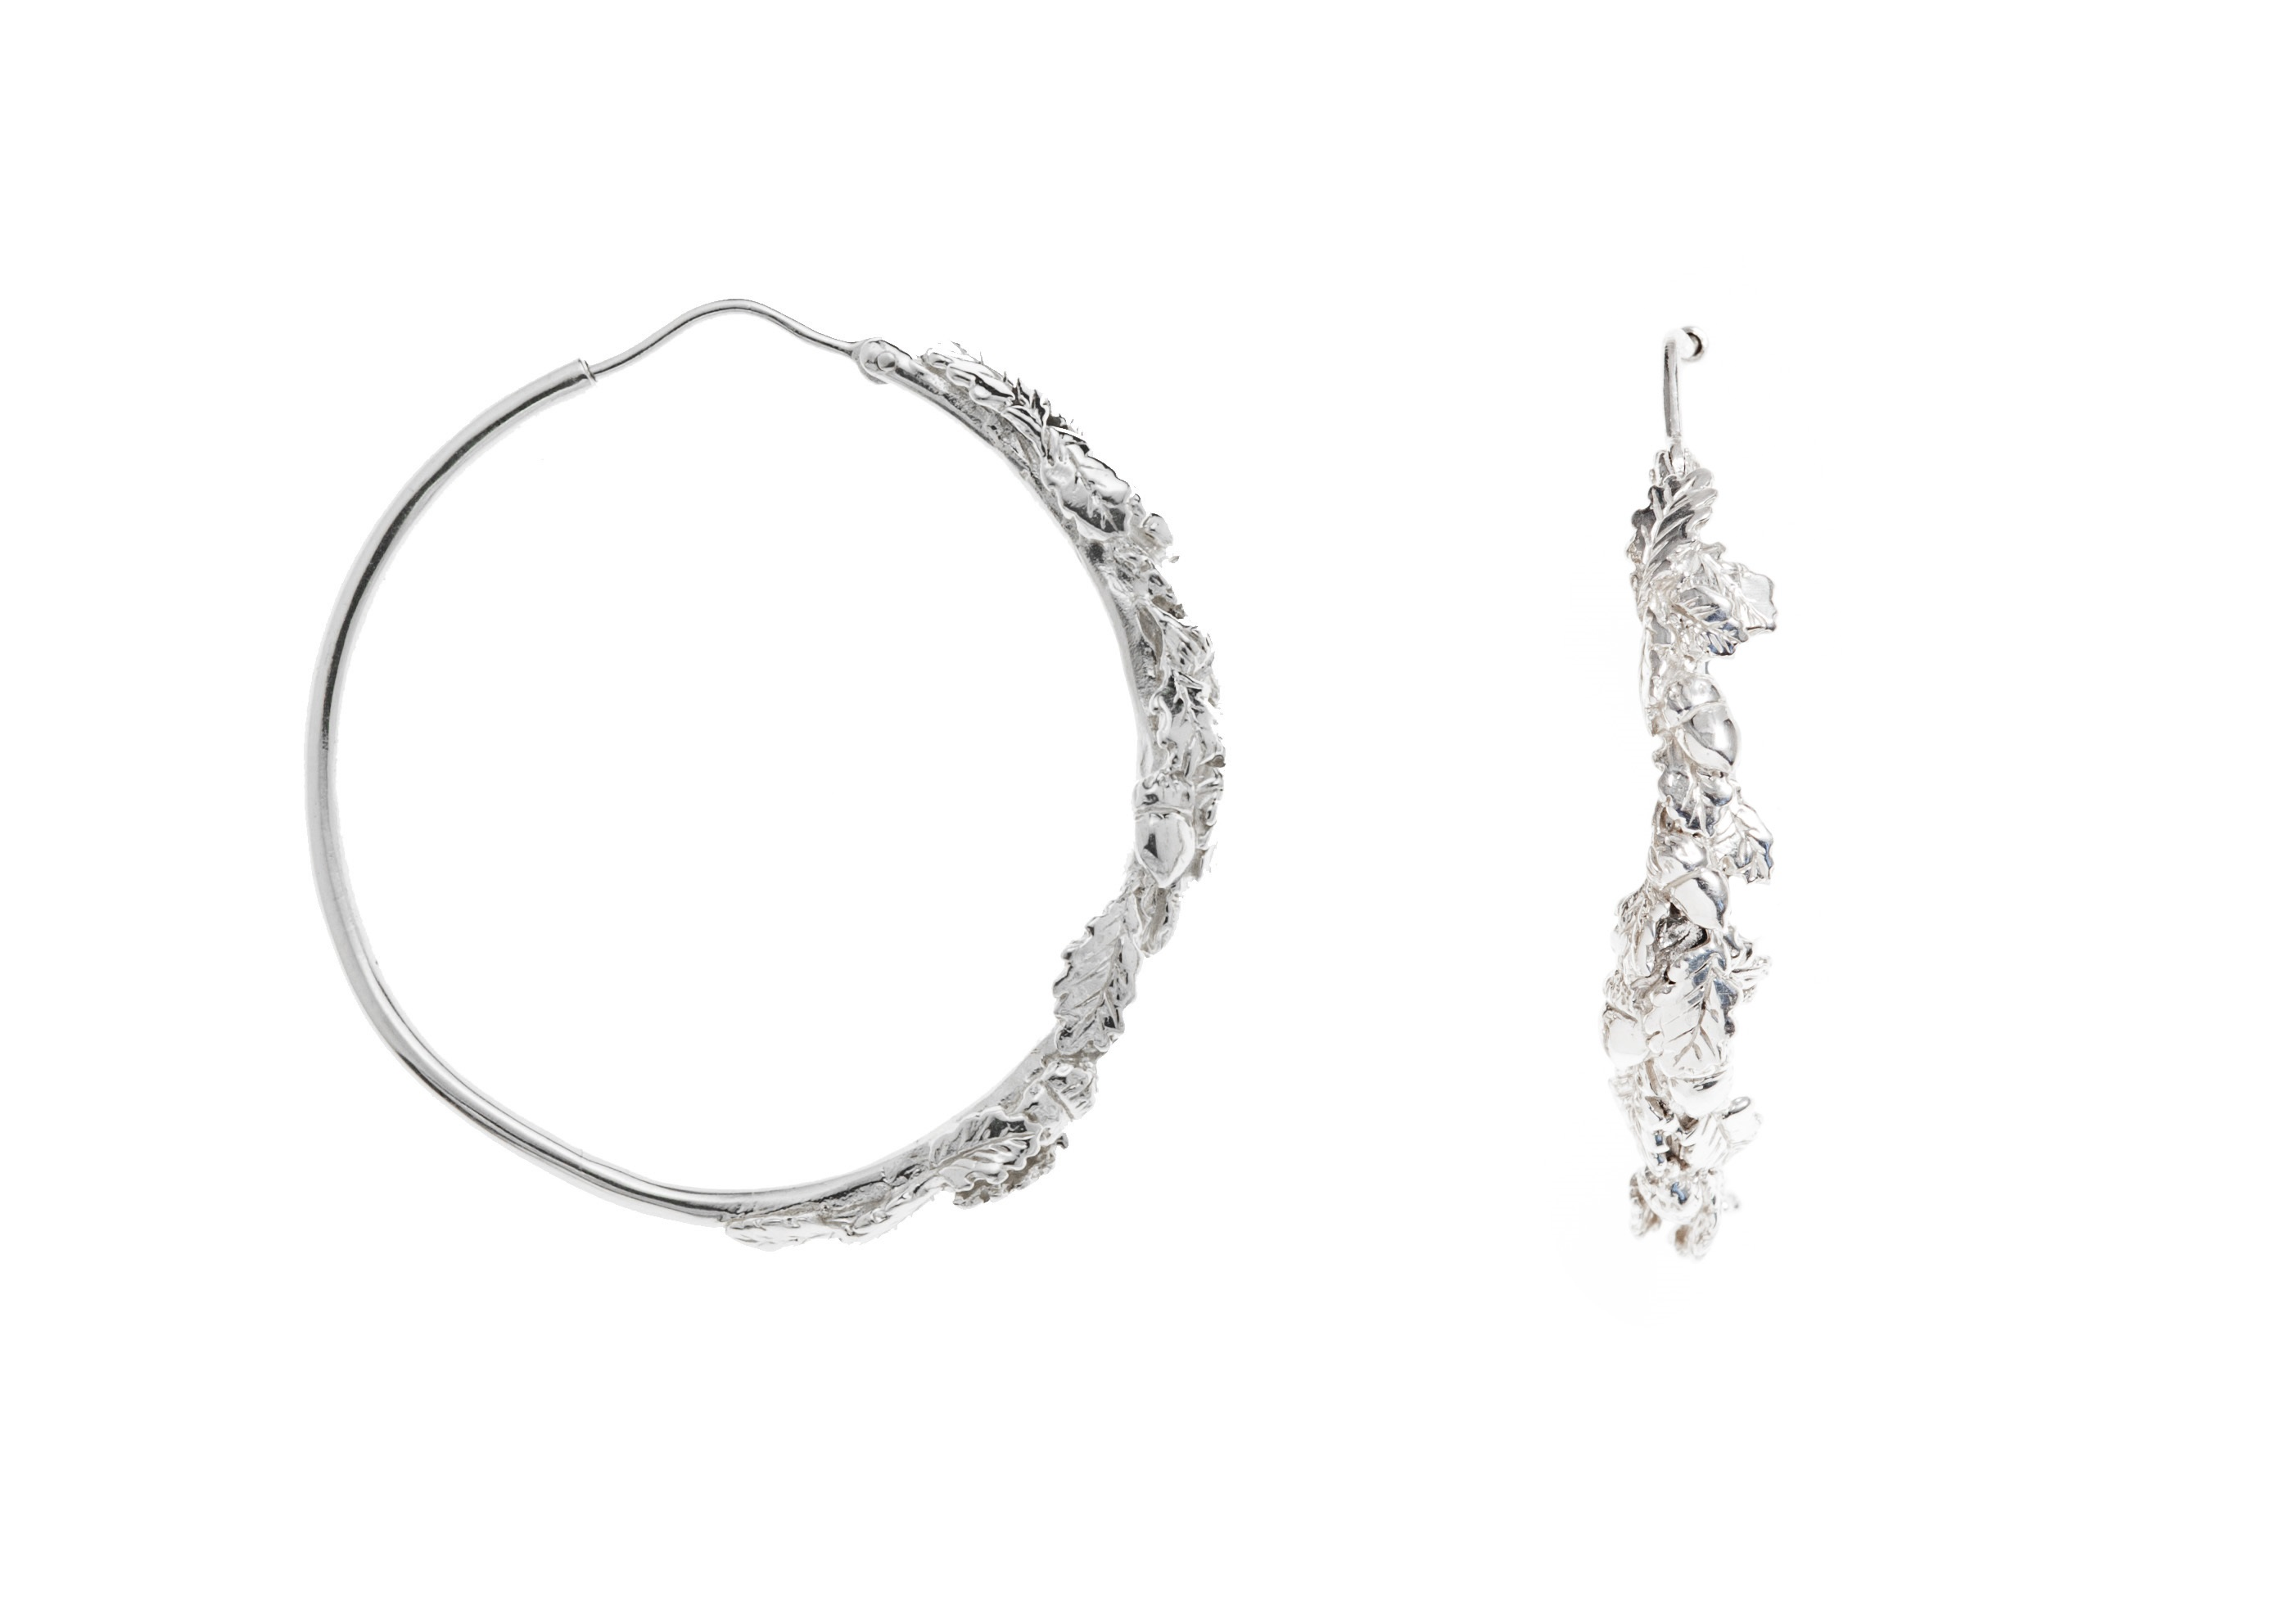 Oak leaves silver hoop earrings